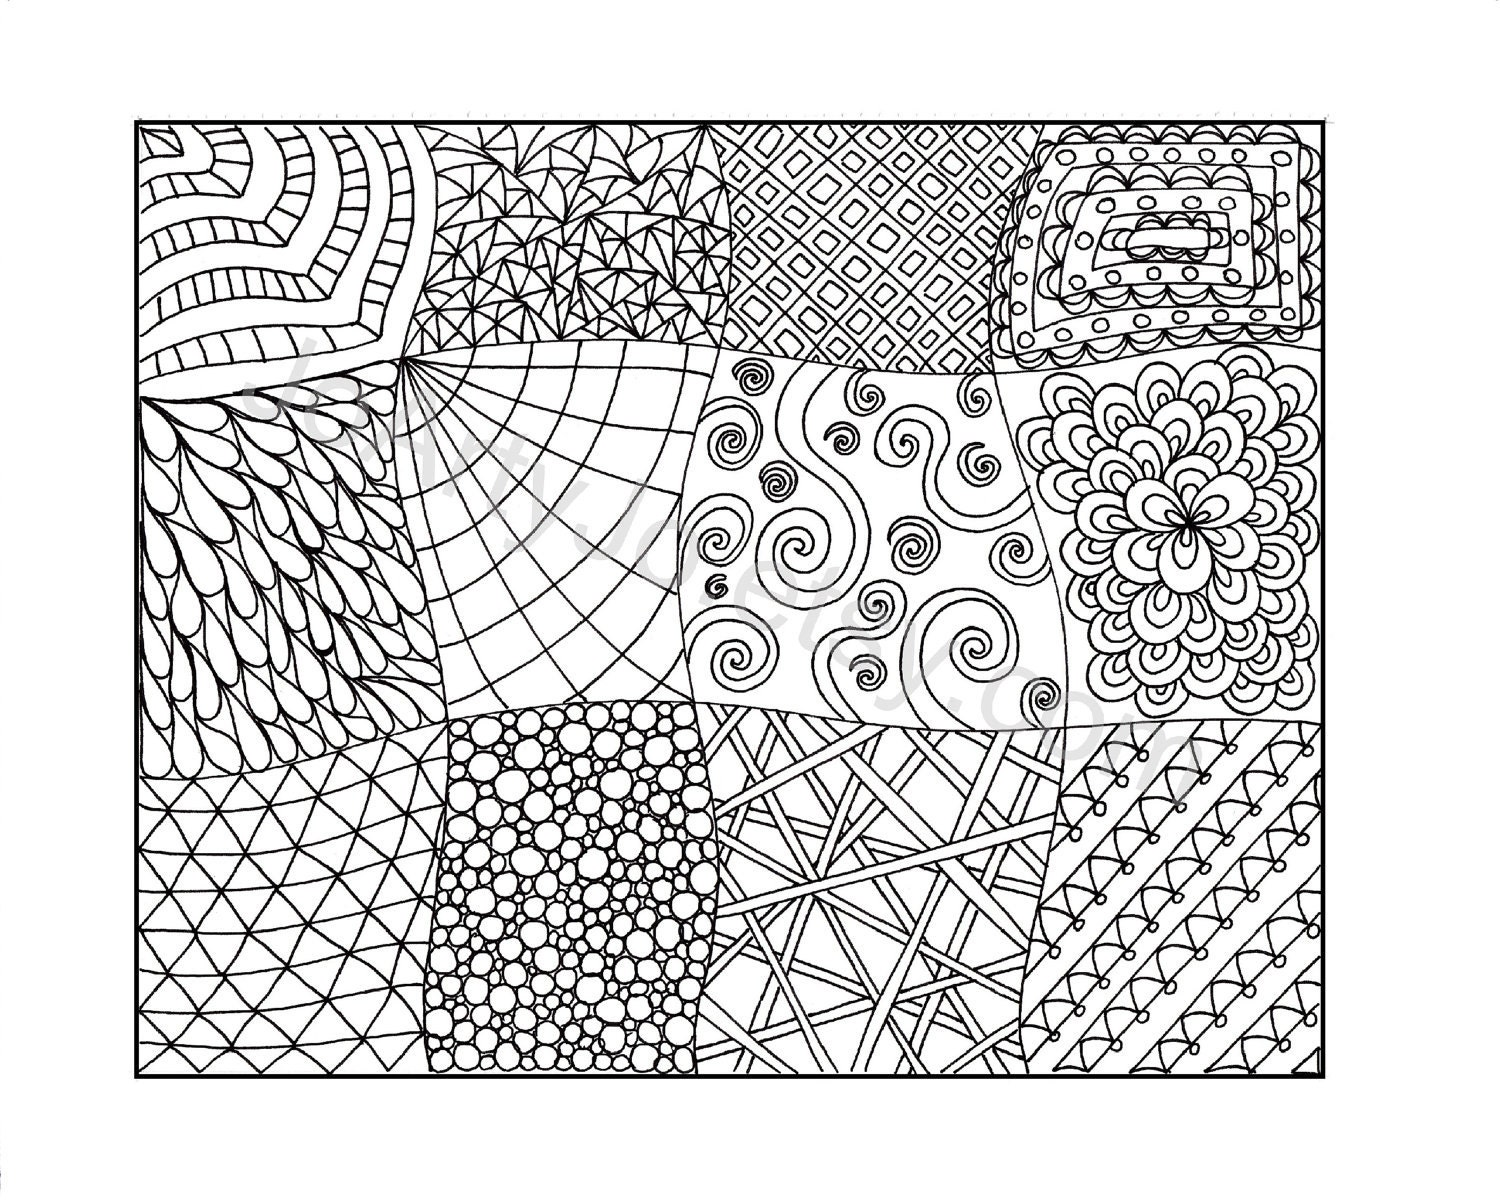 Zendoodle Coloring Page Printable Pdf Zentangle Inspired Zentangle Coloring Page